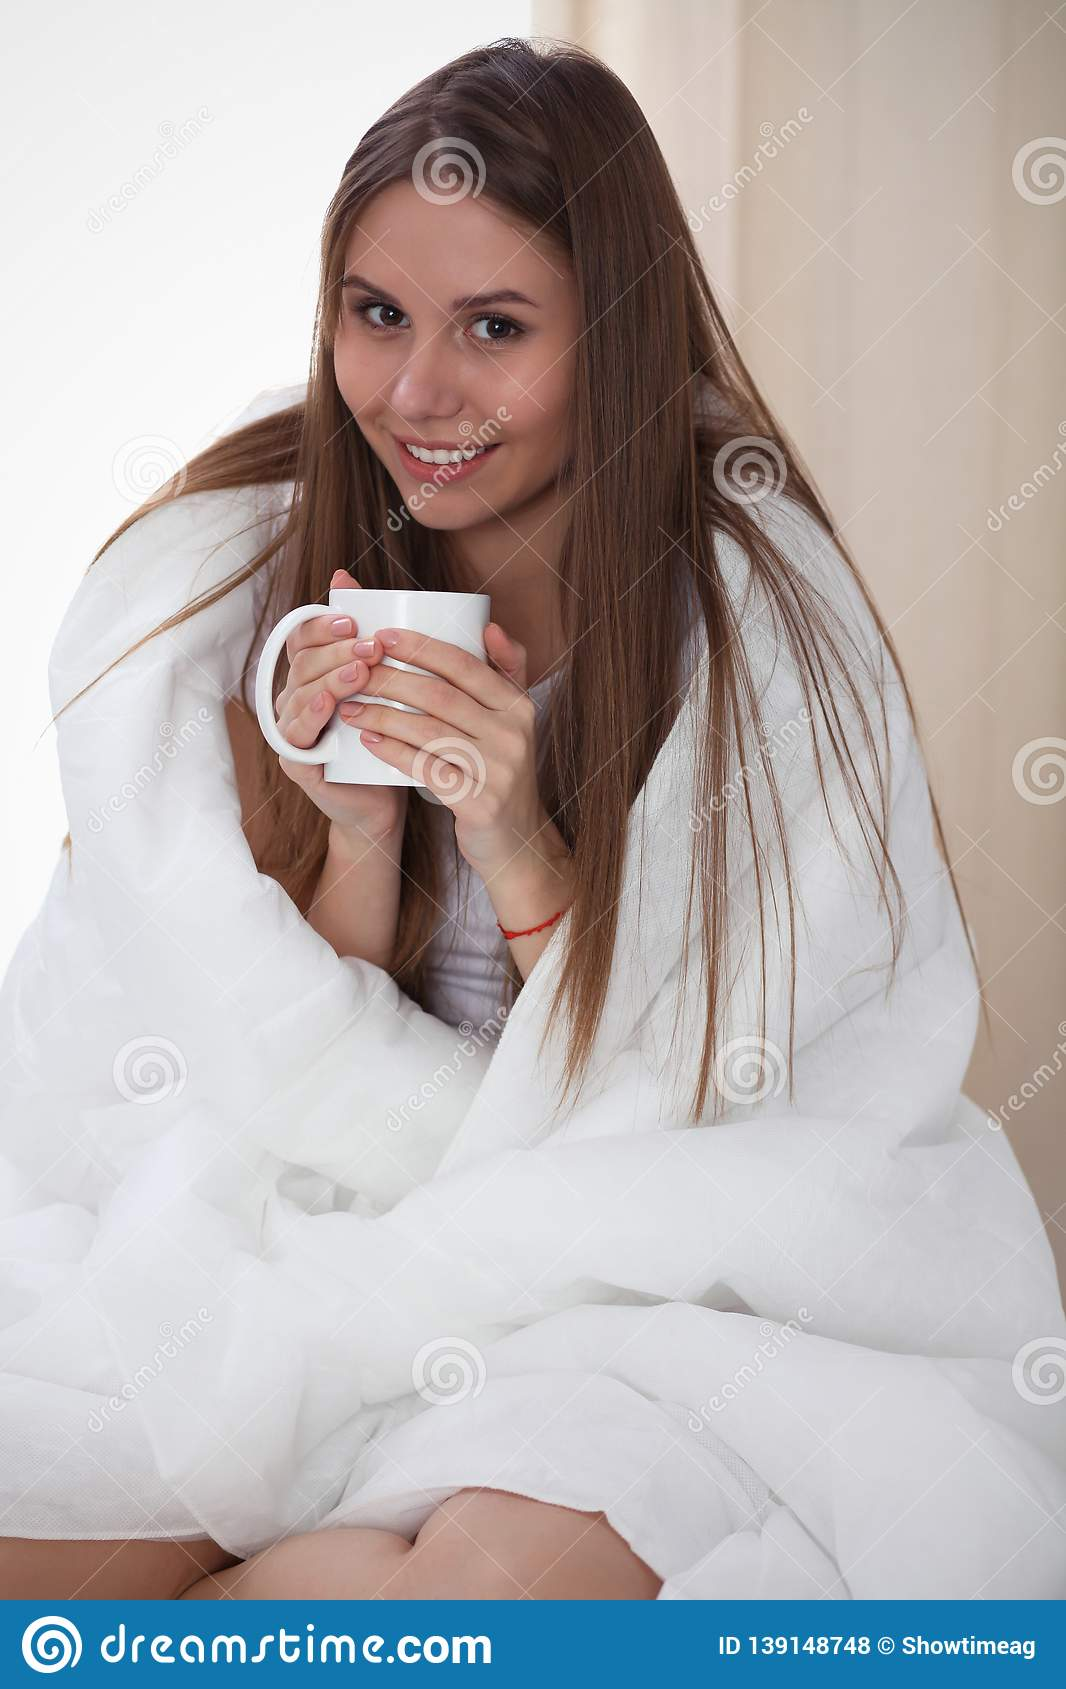 Woman wrapped in a blanket and holds a mug after wake up, entering a day happy and relaxed after good night sleep. Sweet